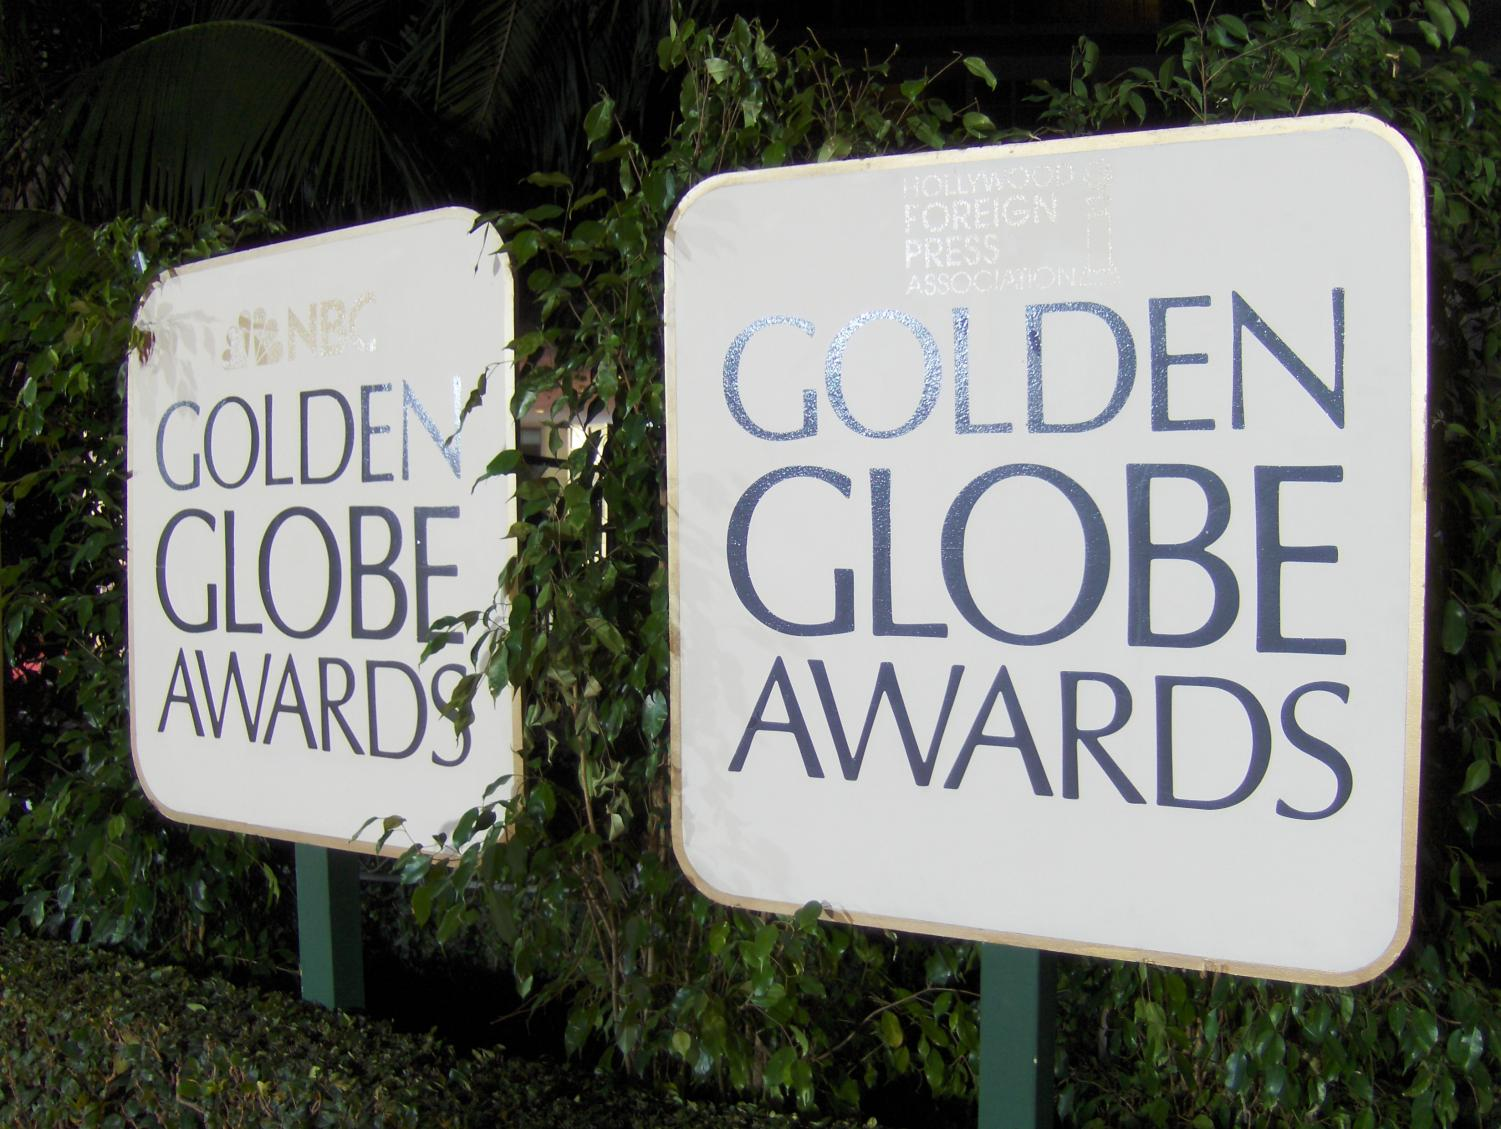 Though the 2019 Golden Globes saw greater efforts towards diversity and inclusion, there is still progress to be made. (COURTESY OF JOE SHLABOTNIK VIA FLICKR)